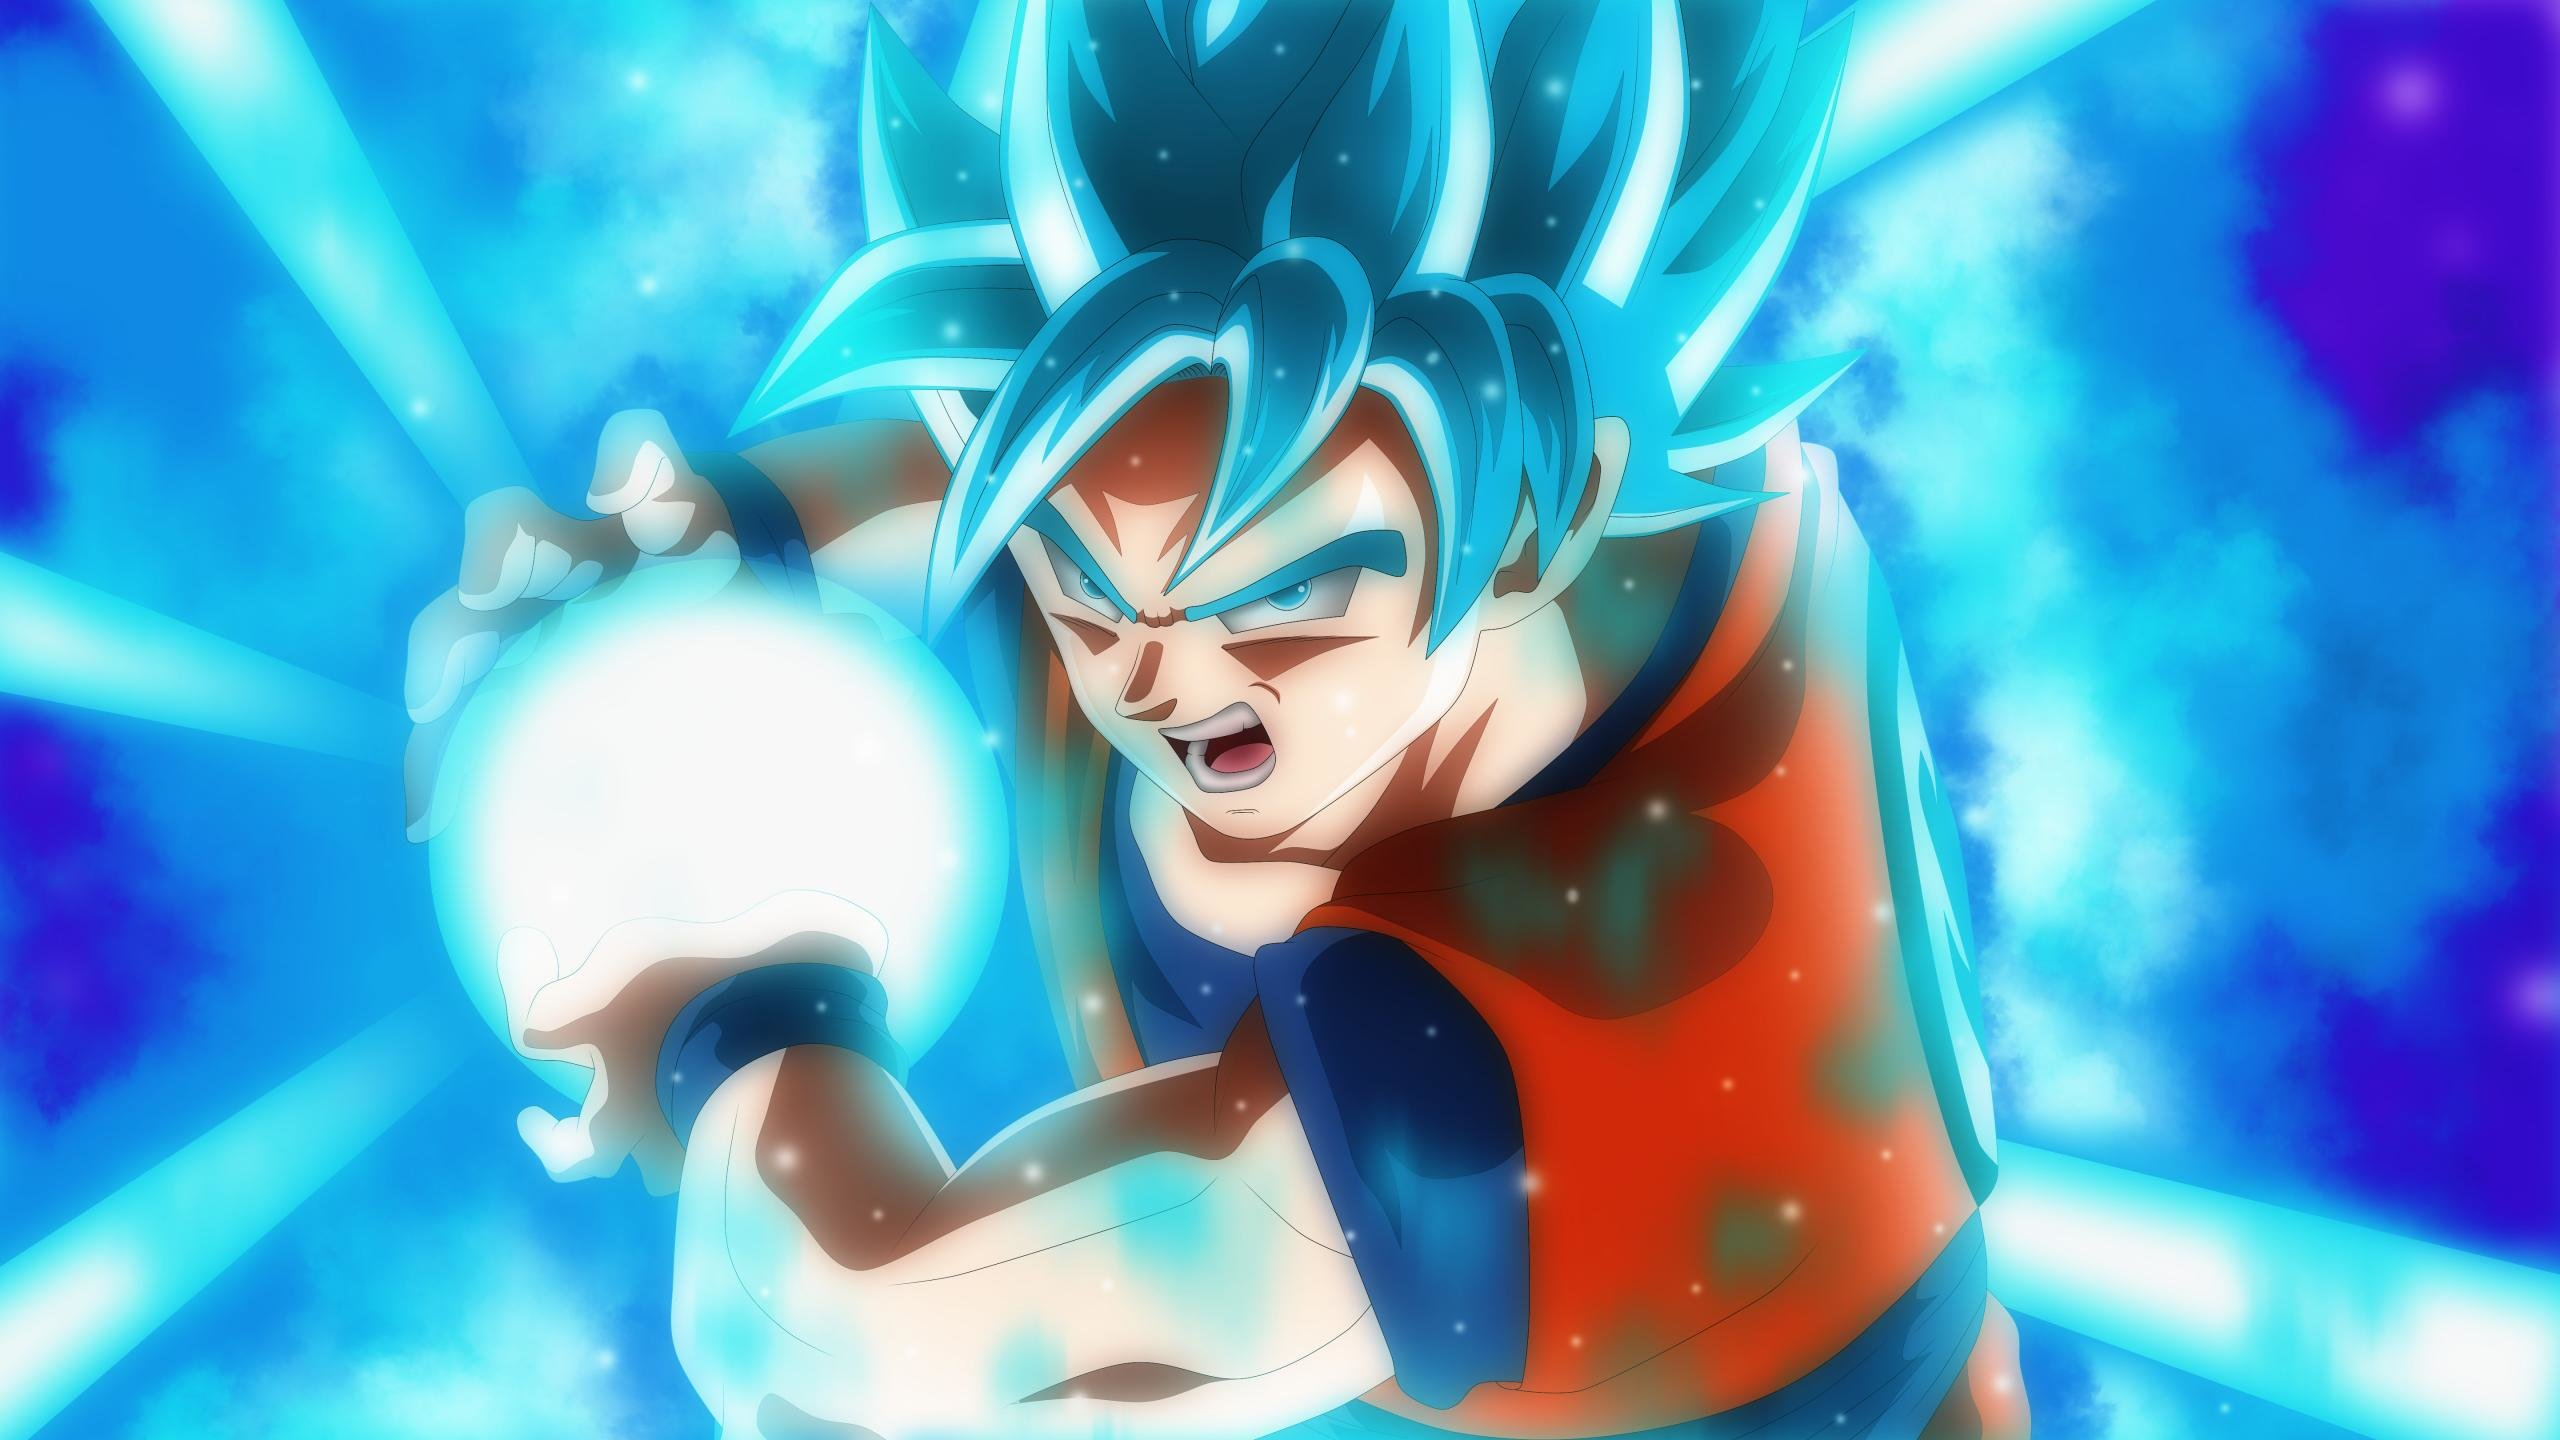 Download hd 2560x1440 Dragon Ball Super PC background ID:242726 for free